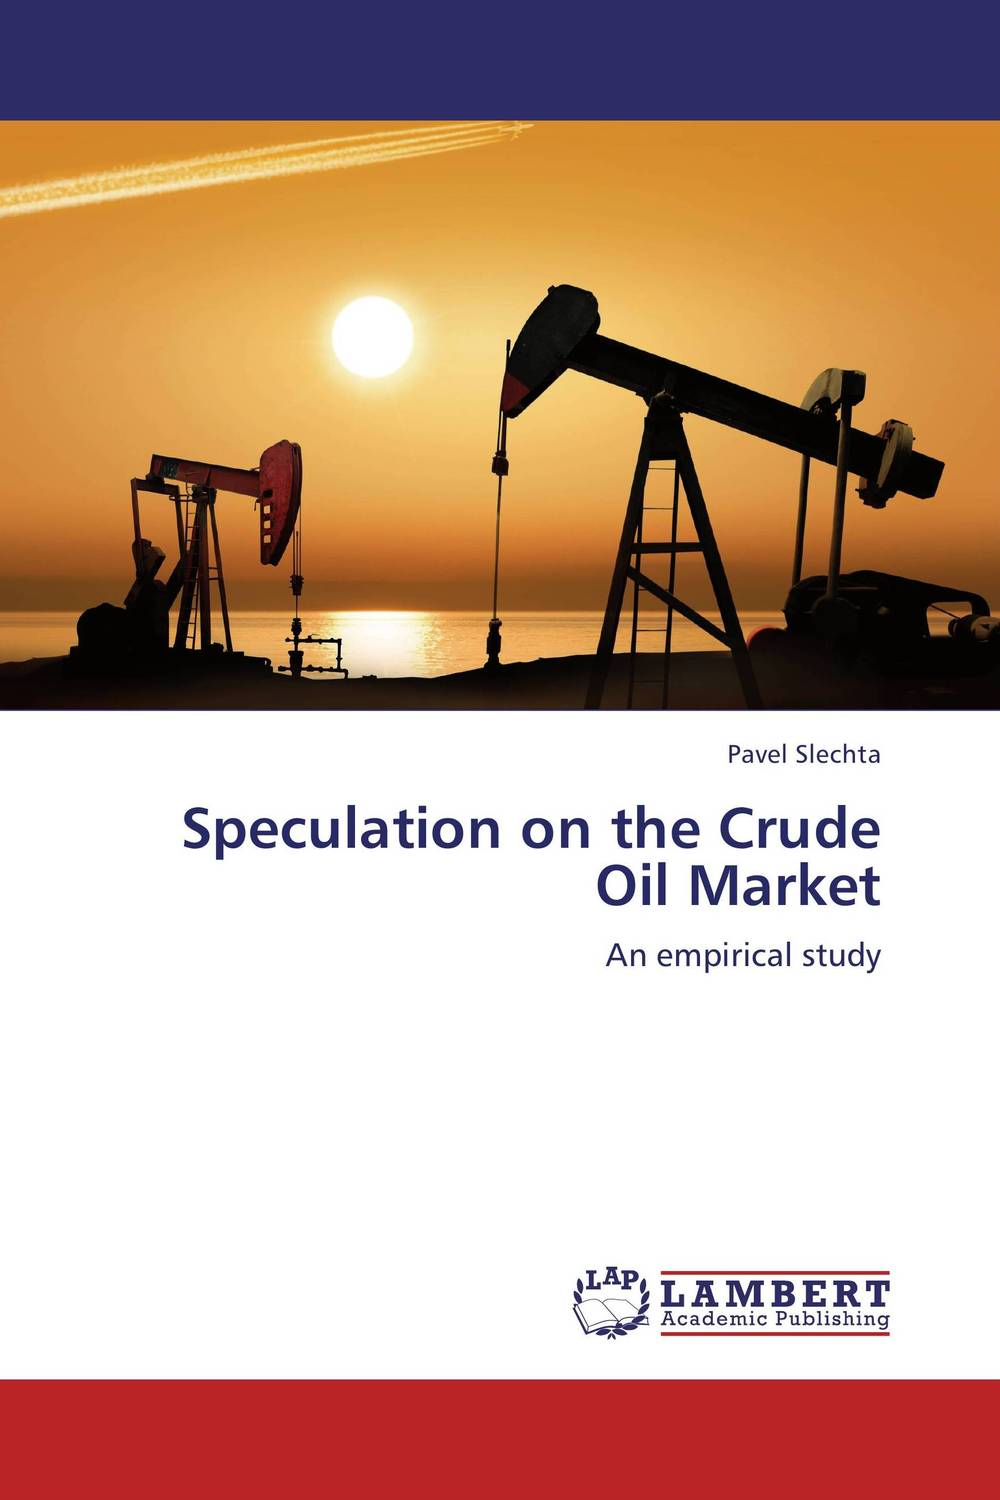 Speculation on the Crude Oil Market dearomatization of crude oil